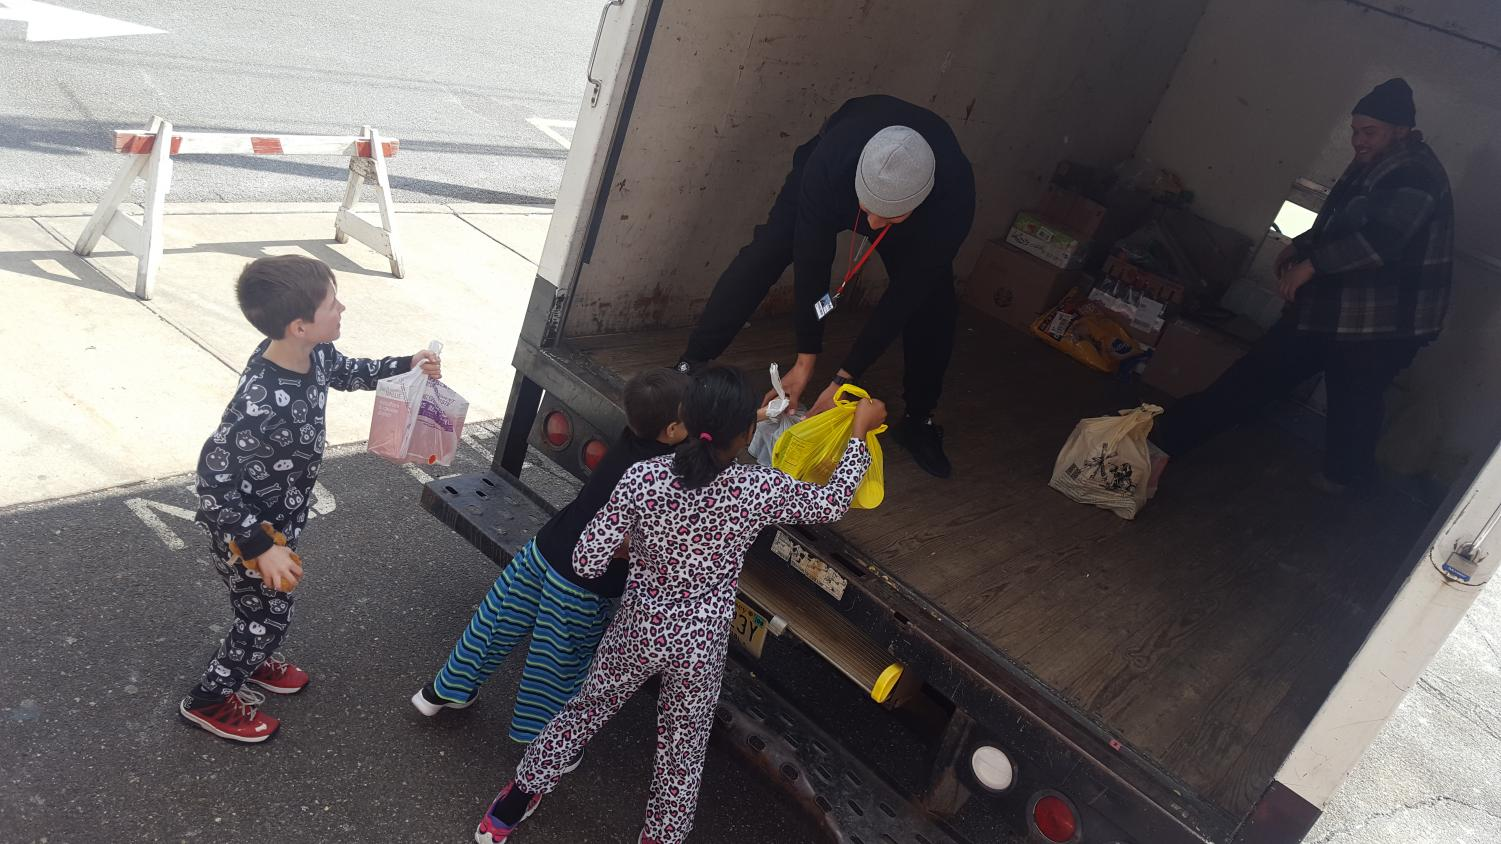 Third graders from Christina Knaack's homeroom help load canned goods onto the donation truck. The truck delivers the items to local food pantries.